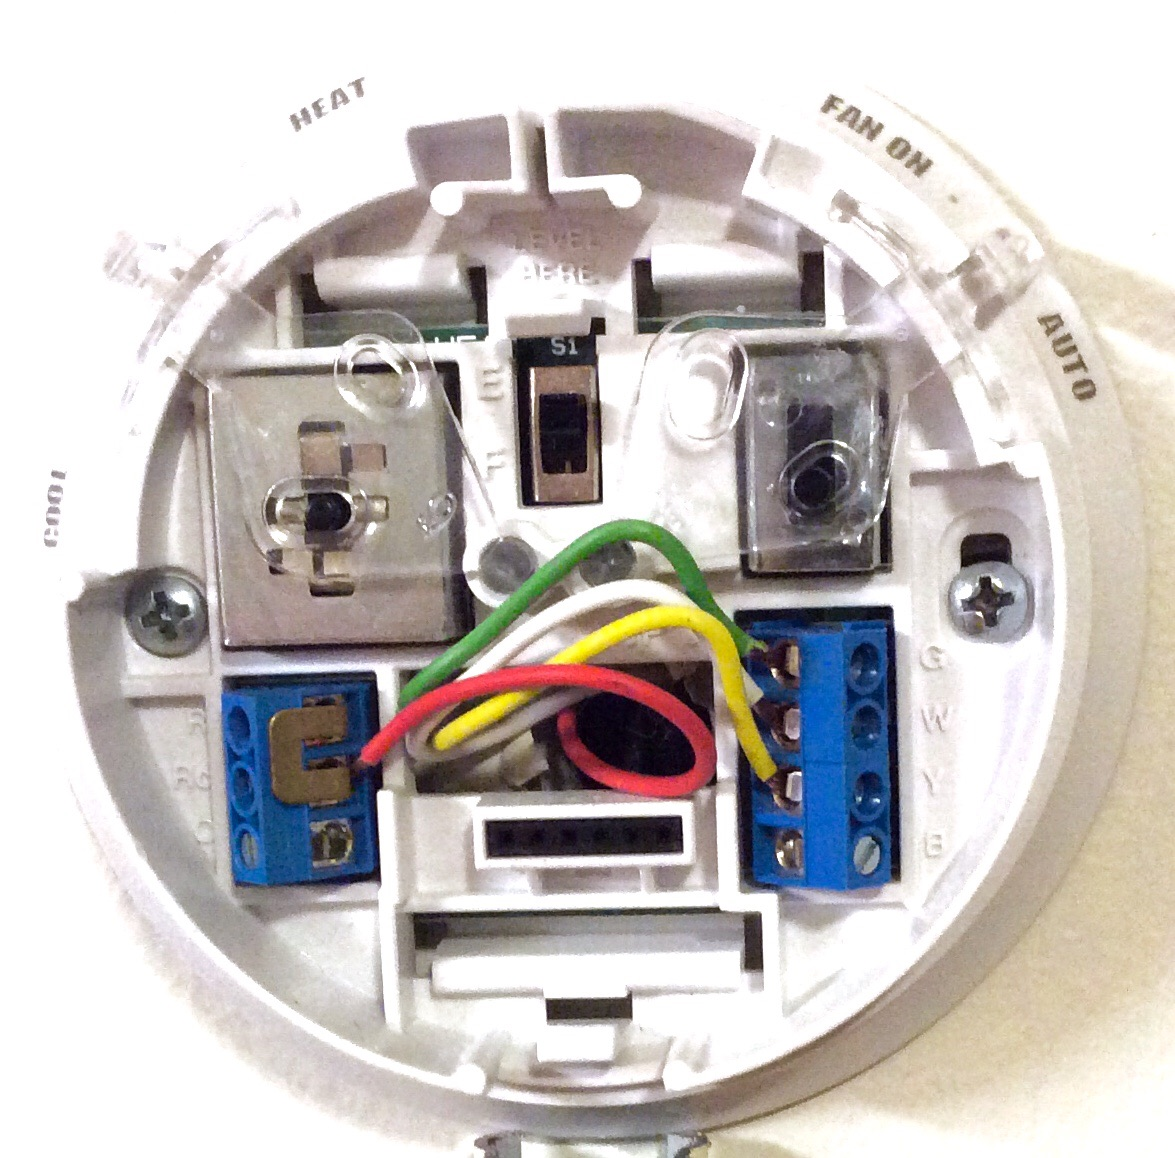 hight resolution of honeywell thermostat wiring color code